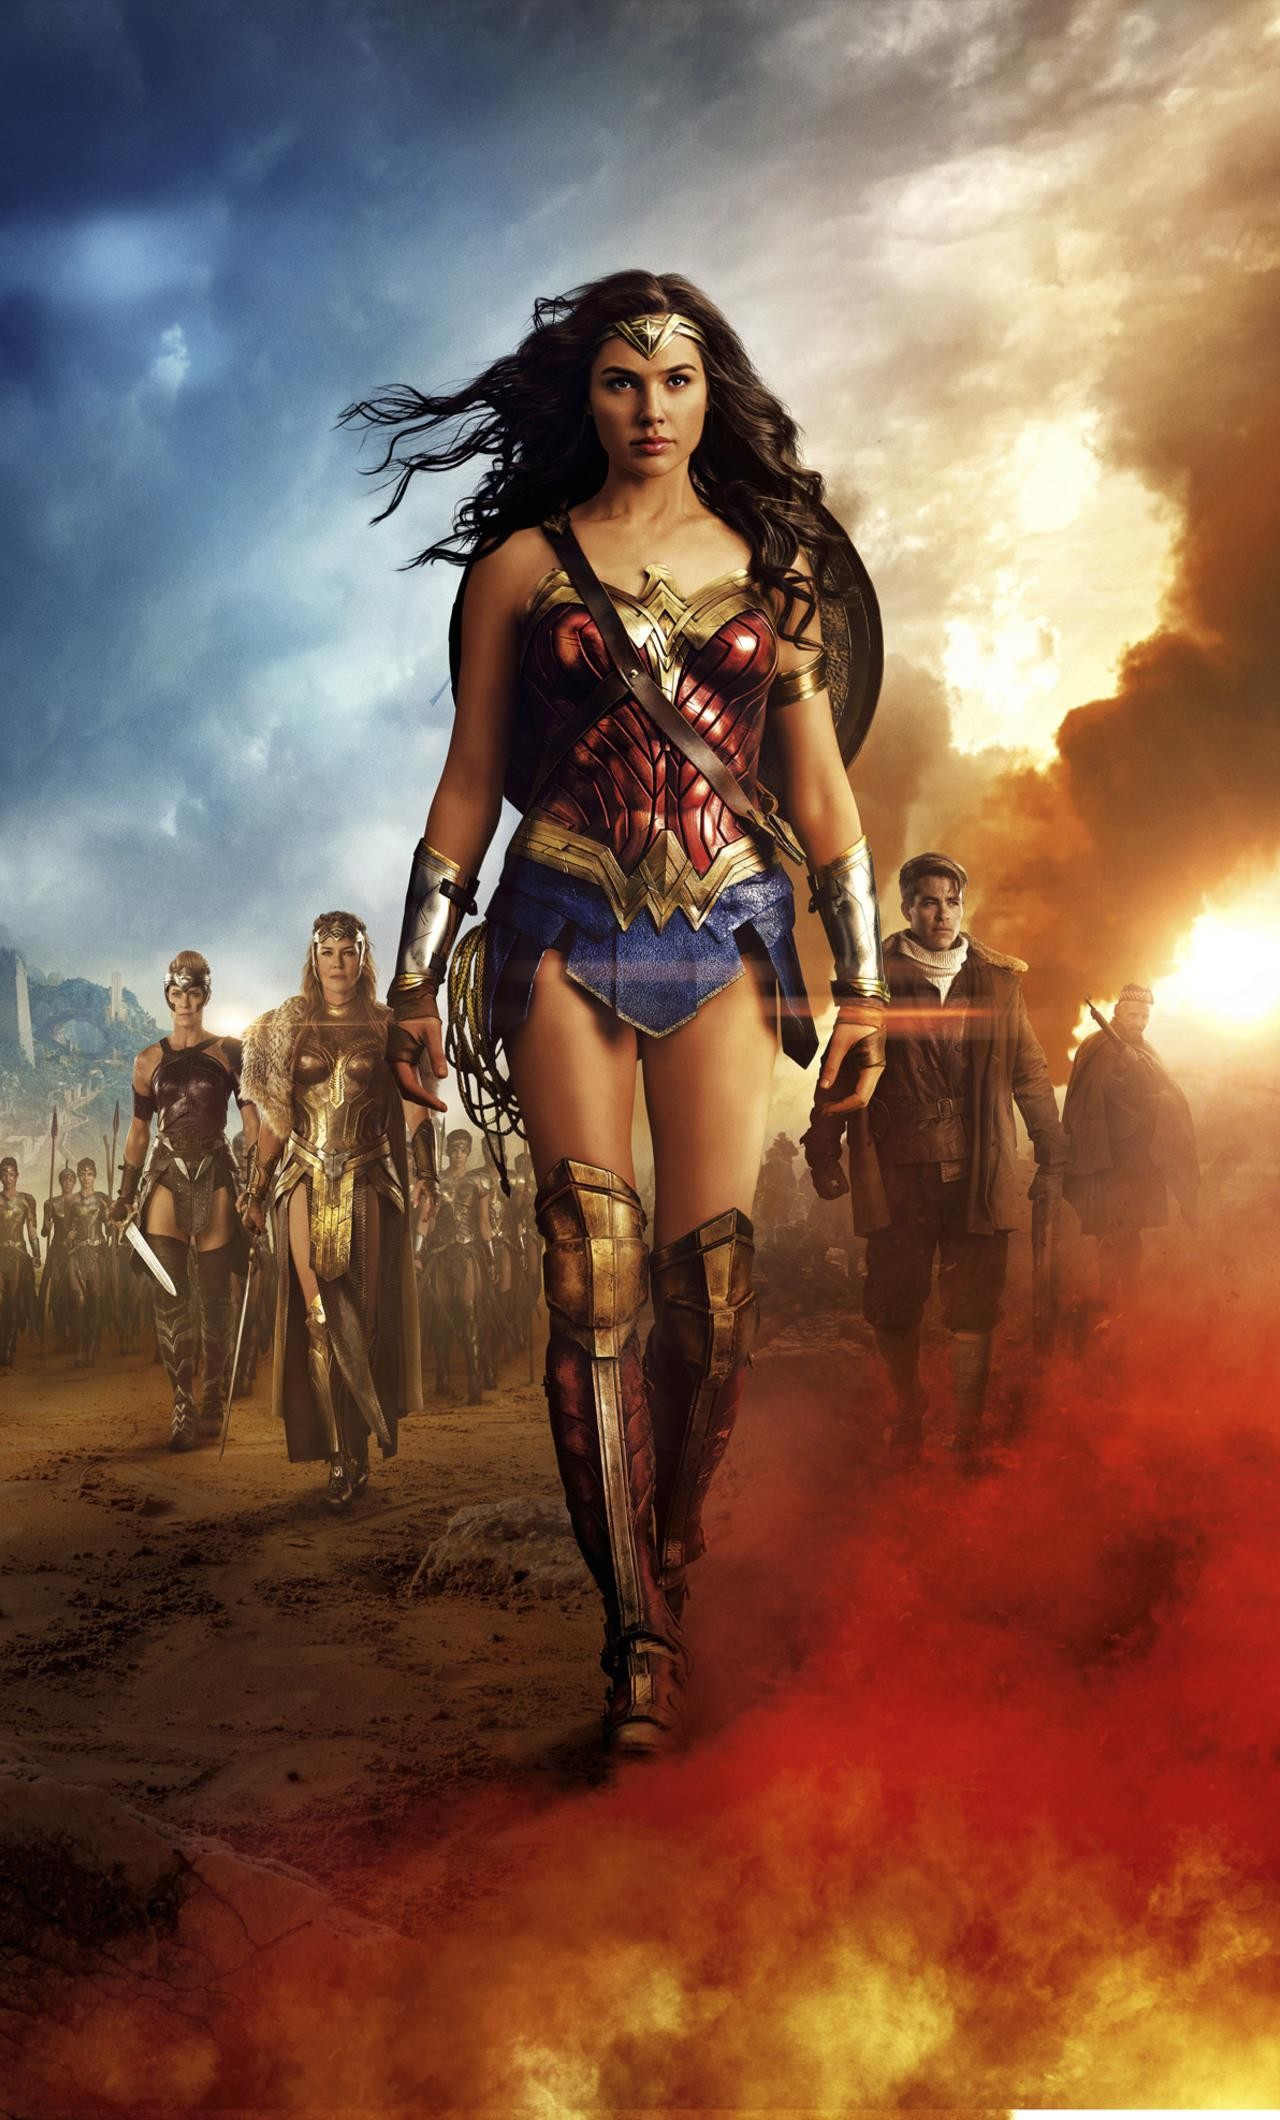 1280x2120 wonder woman wallpaper for iphone #746878